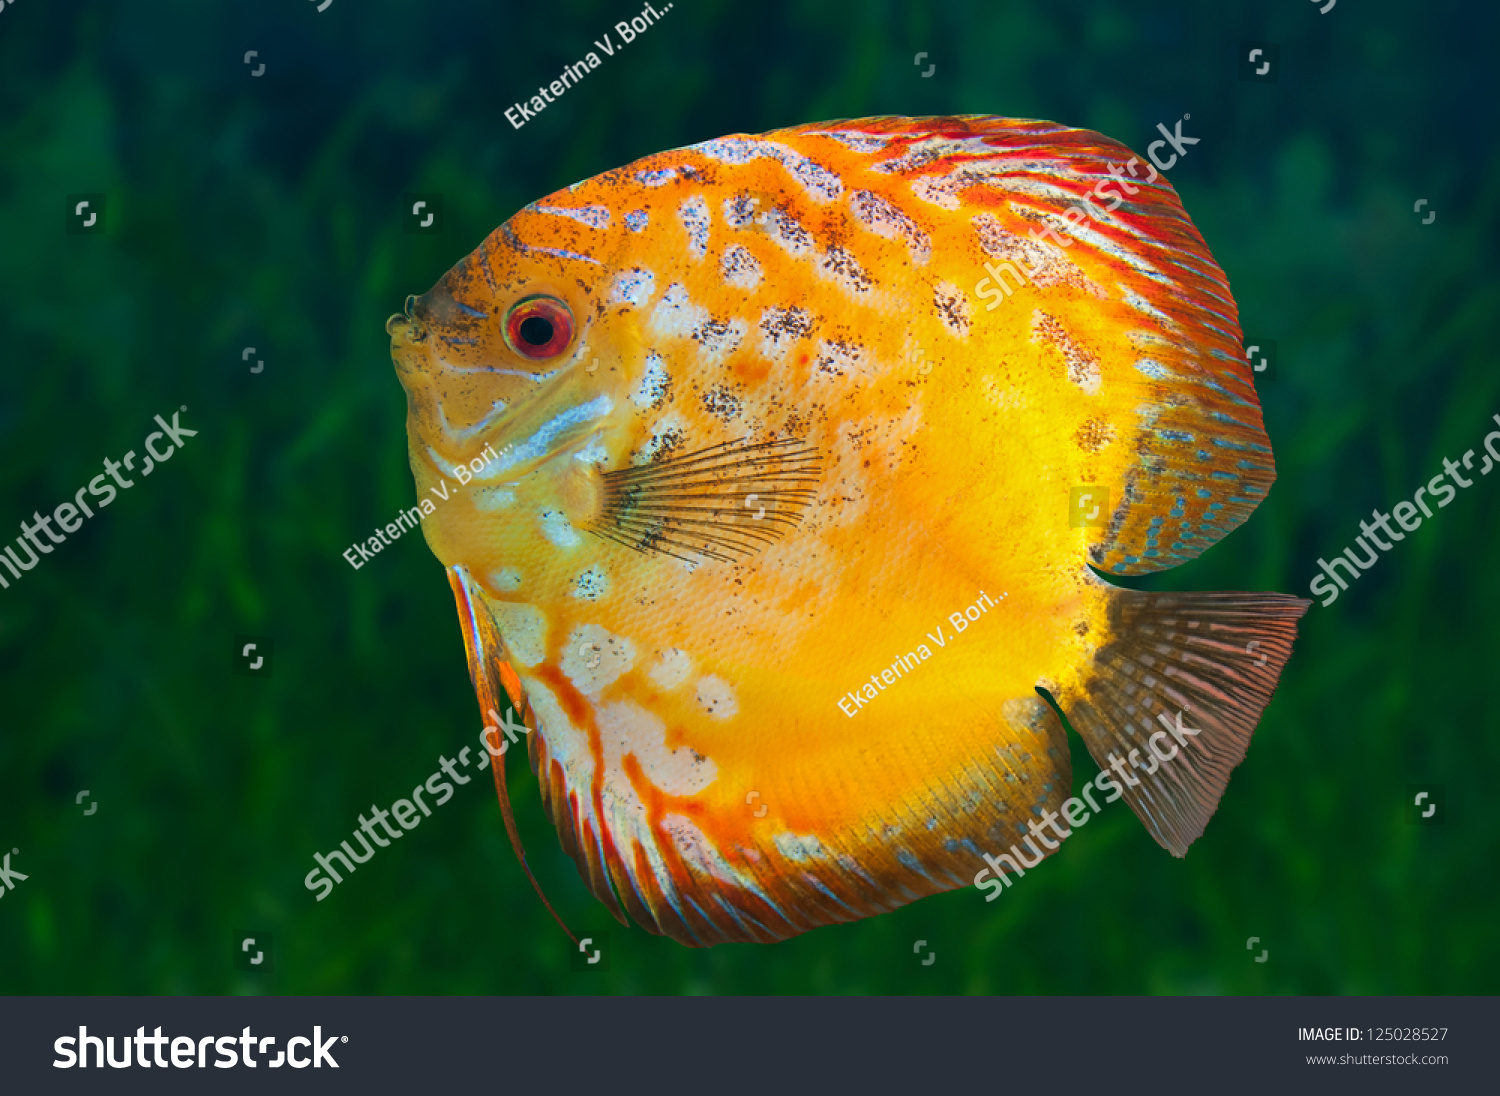 Freshwater fish amazon - Yellow Freshwater Fish Discus Native To The Amazon River In Aquarium